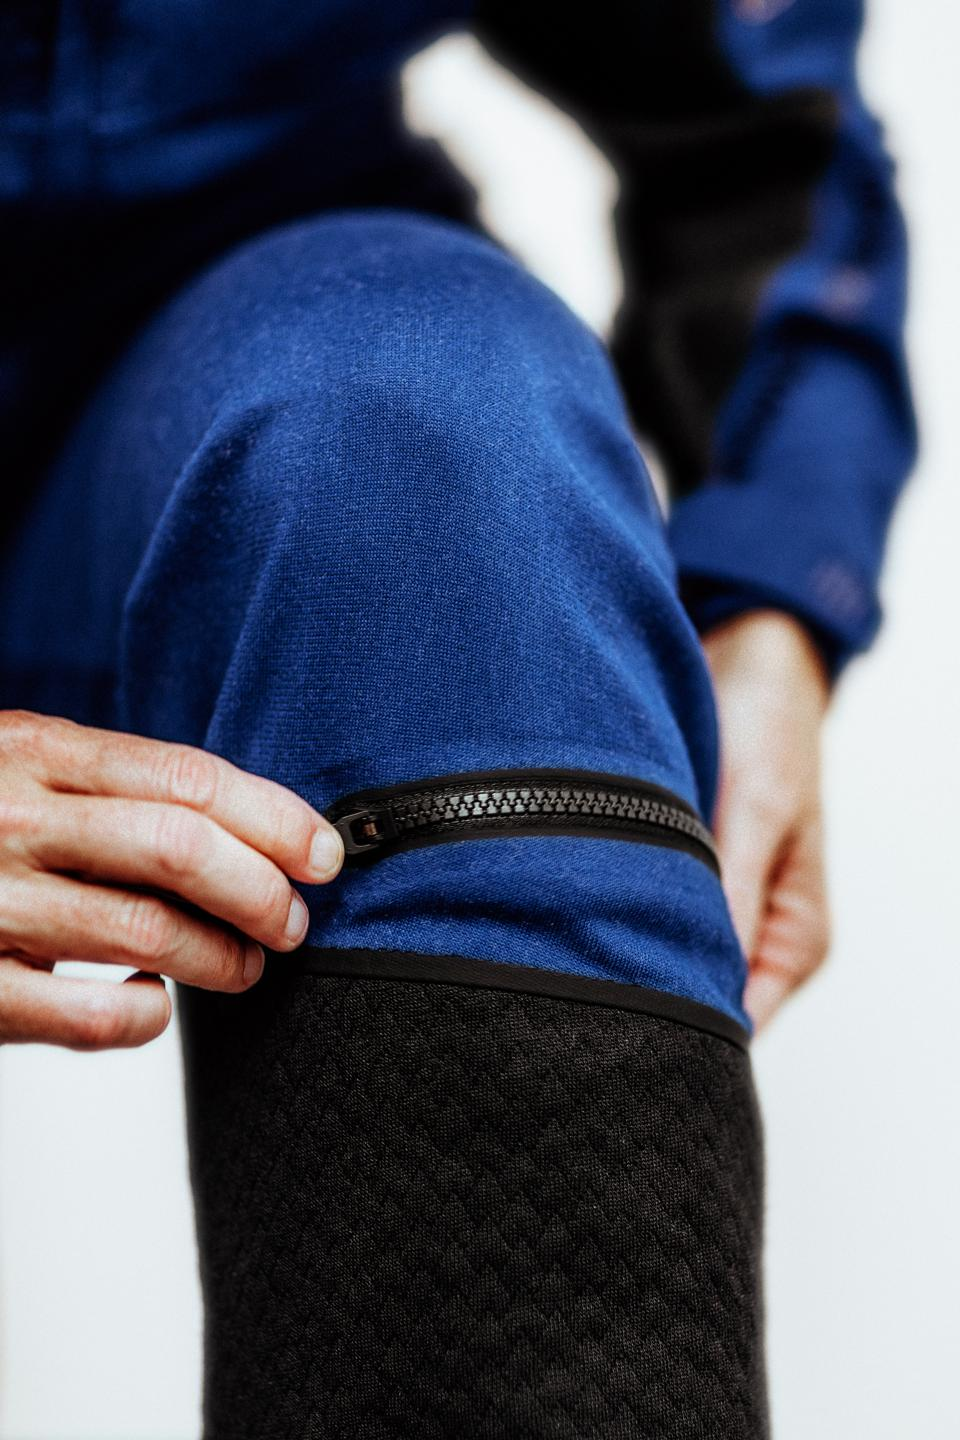 A pilot zips a zipper located just below their knee on the spacesuit.